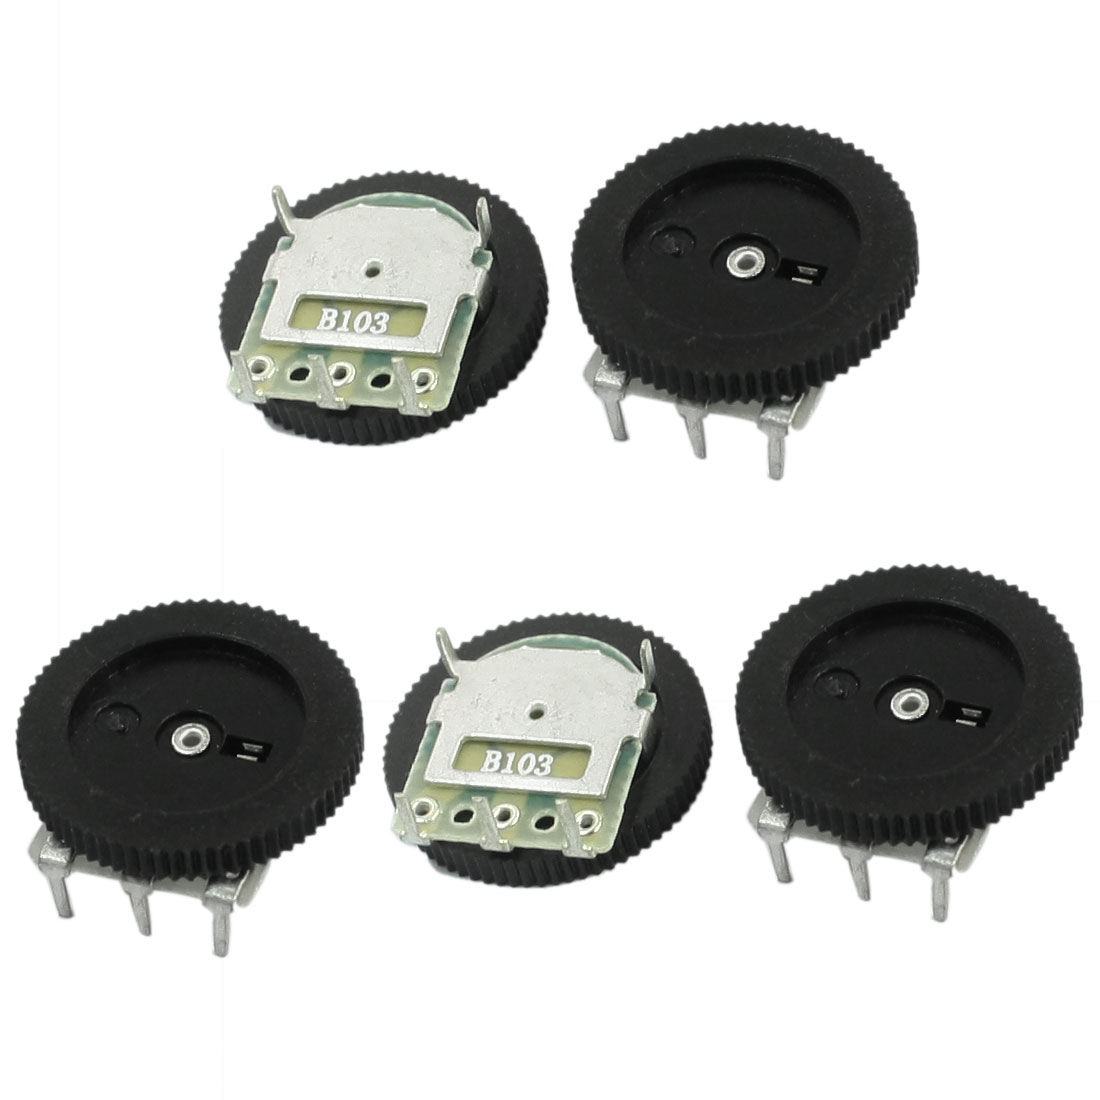 5Pcs 16mmx2mm 10K ohm Stereo Radio Volume Control Wheel Potentiometer B103